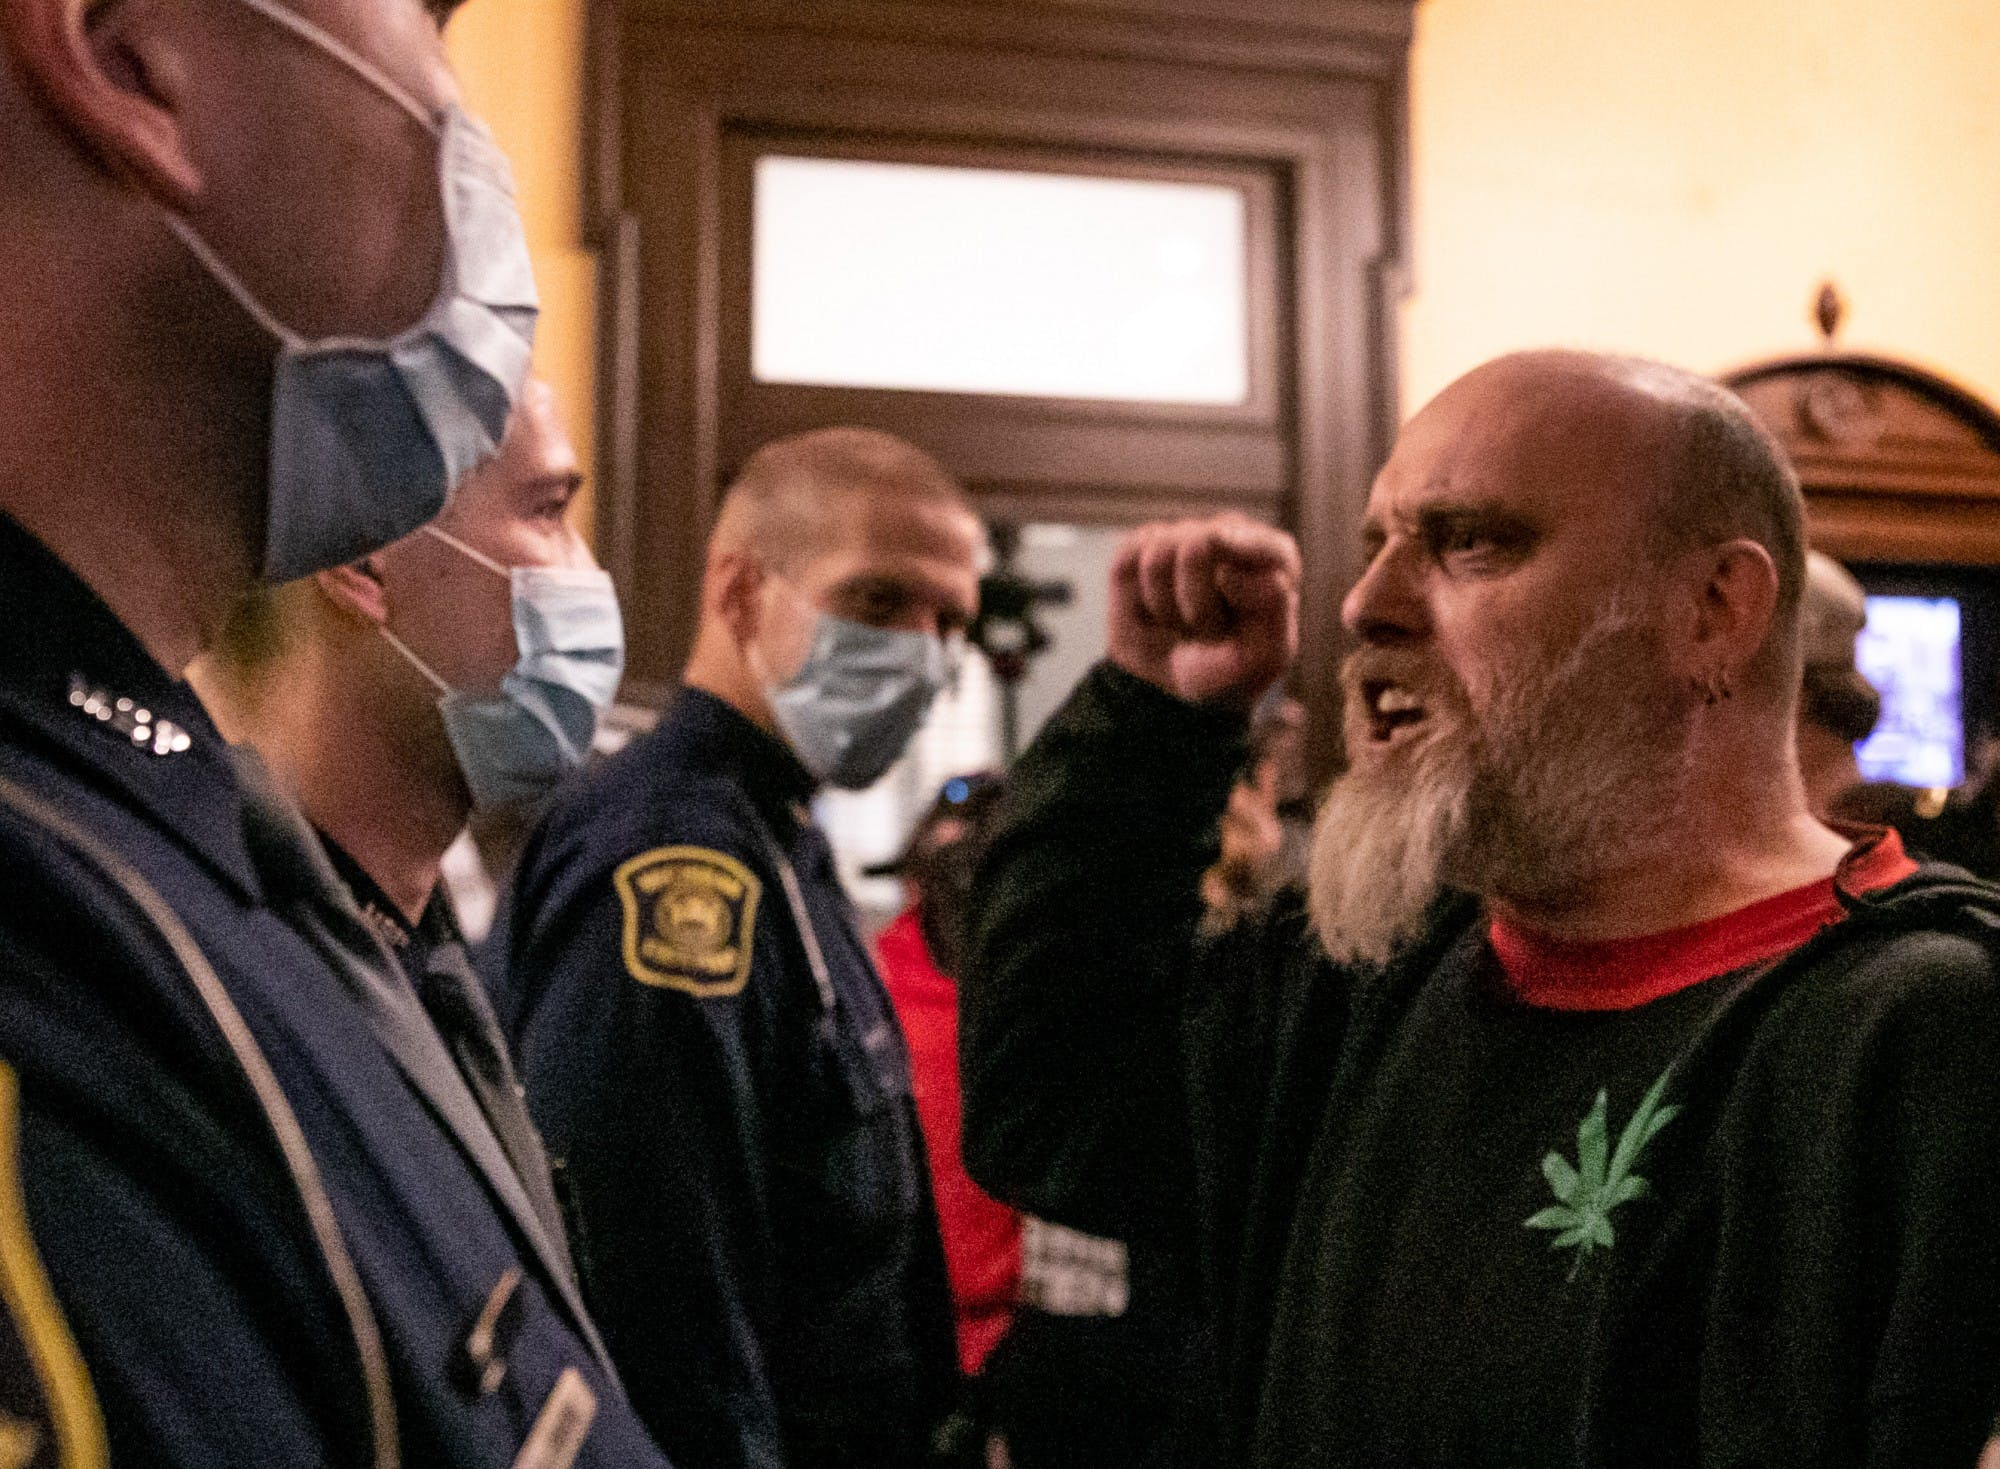 A person without a mask wearing a shirt with a marijuana leaf points at police officers wearing masks.